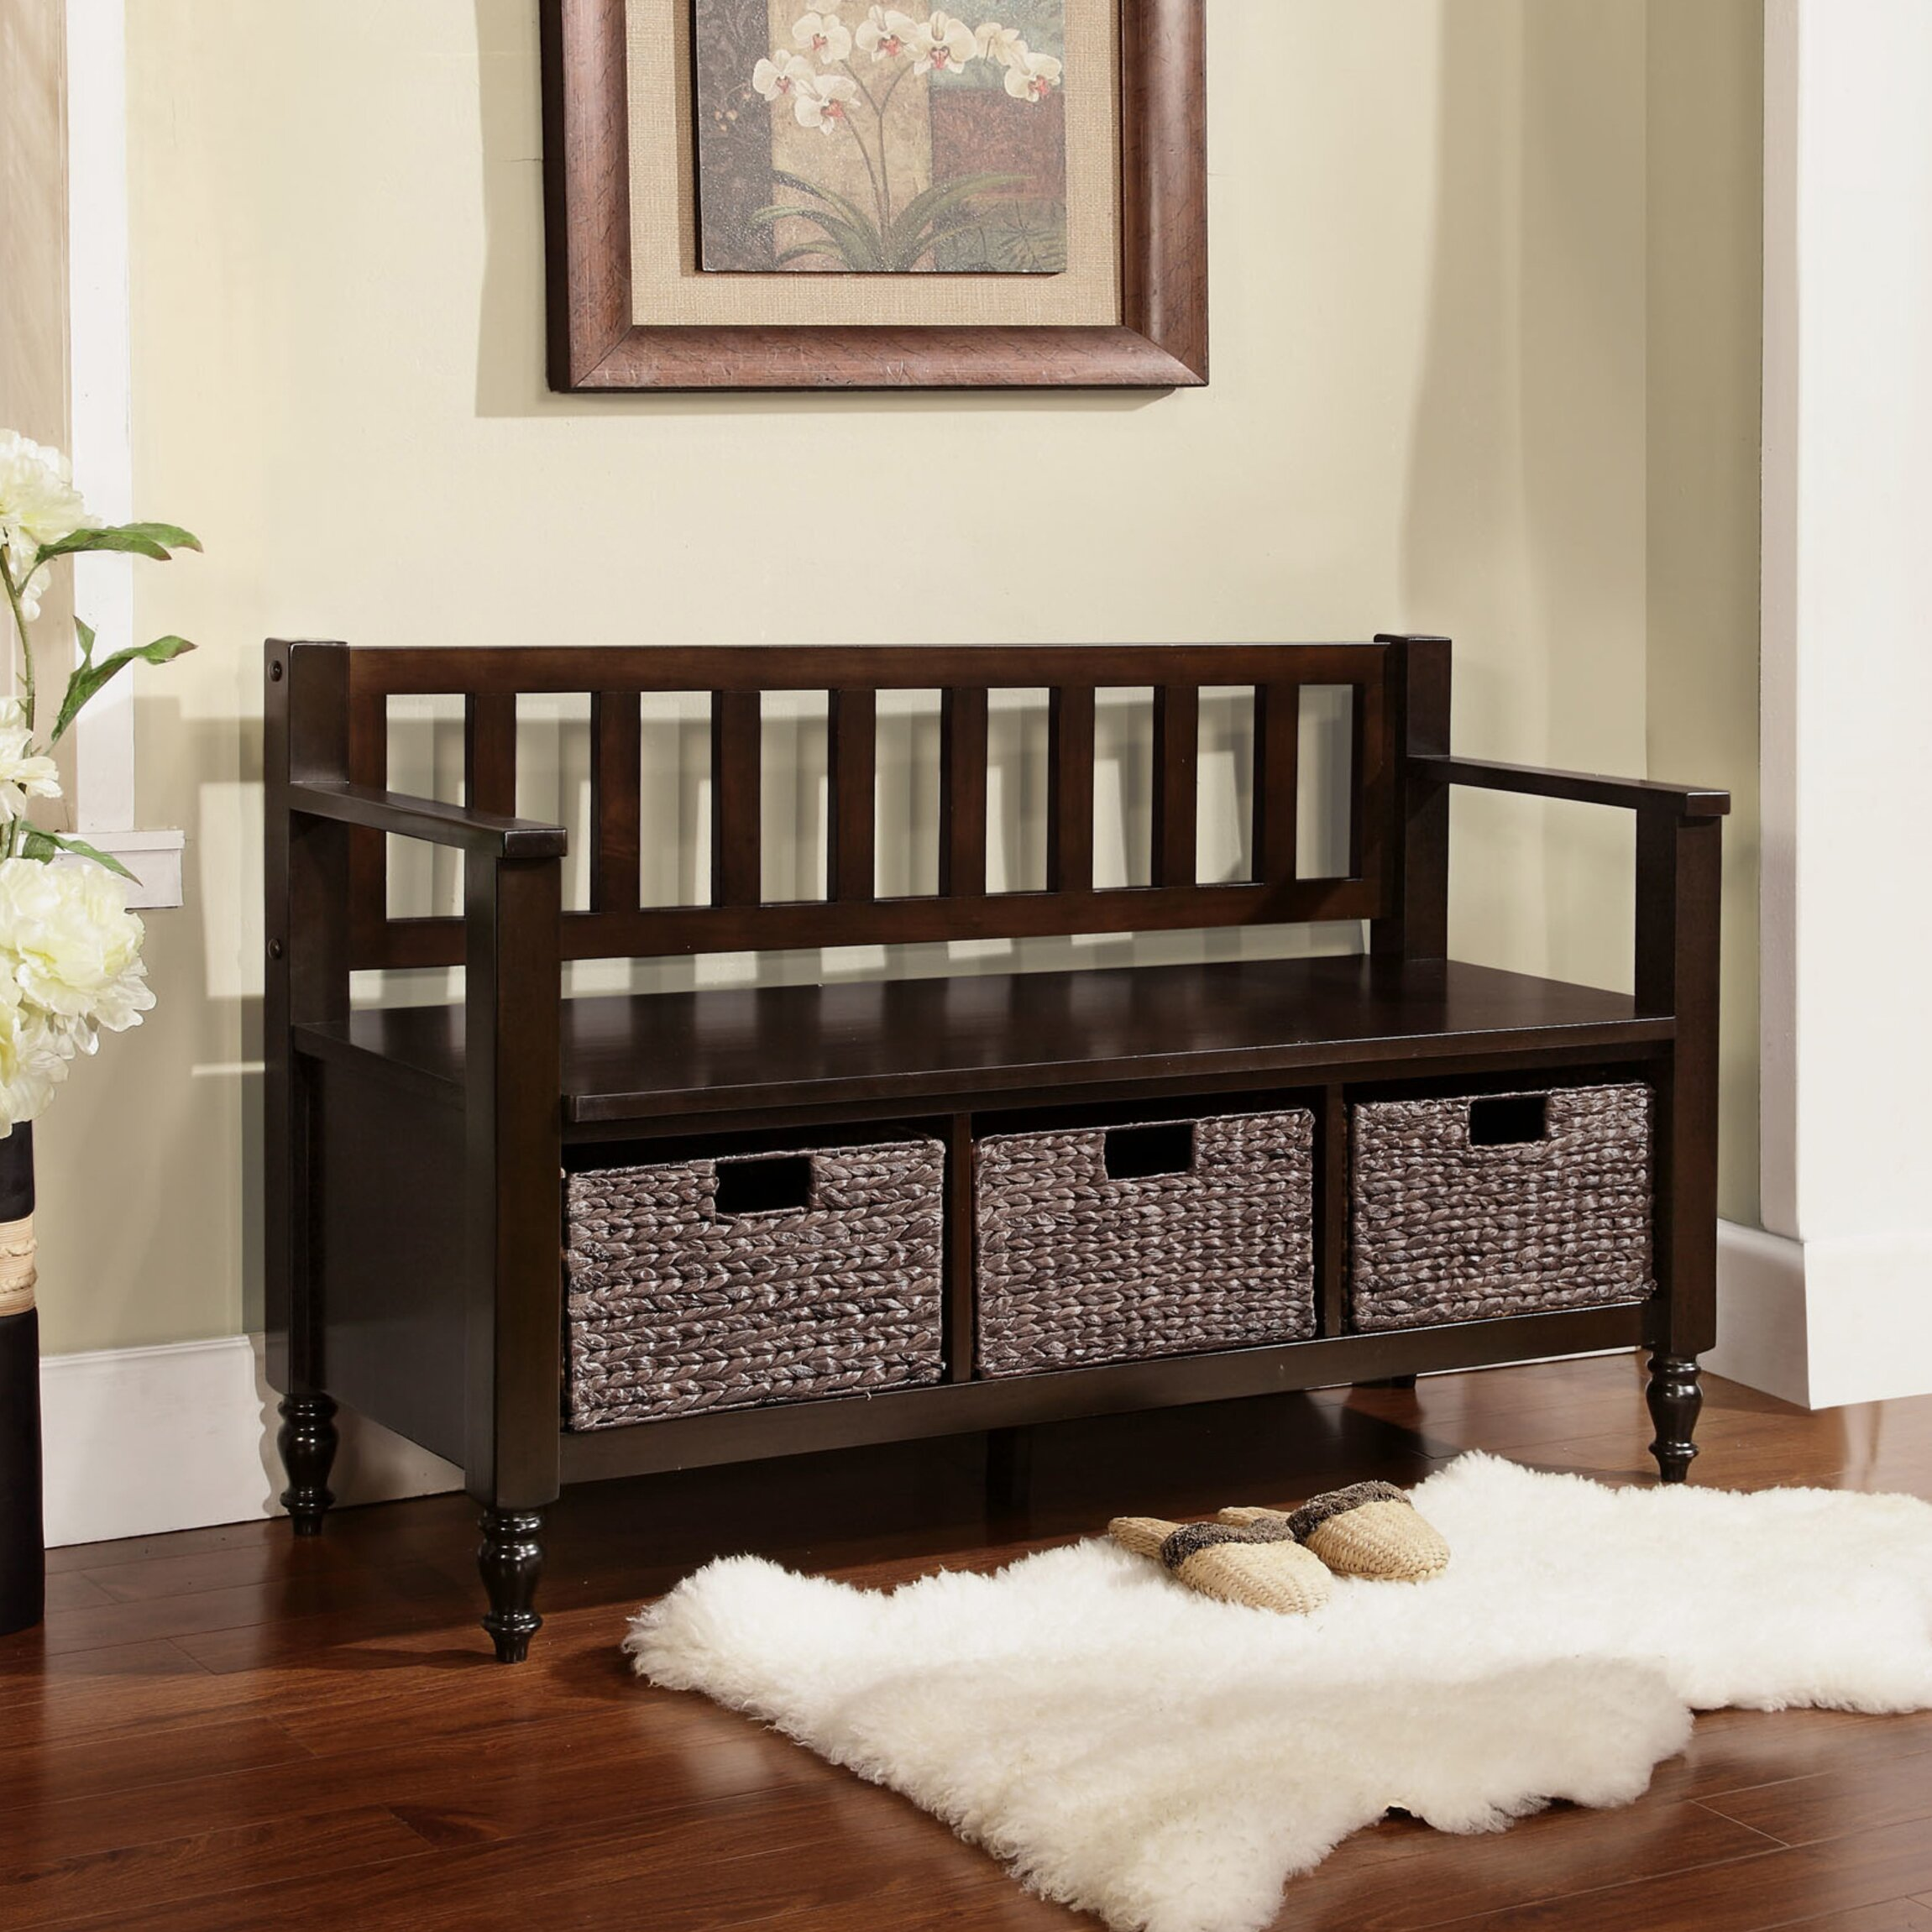 Simpli Home Dakota Entryway Bench Reviews Wayfair: entryway bench and shelf